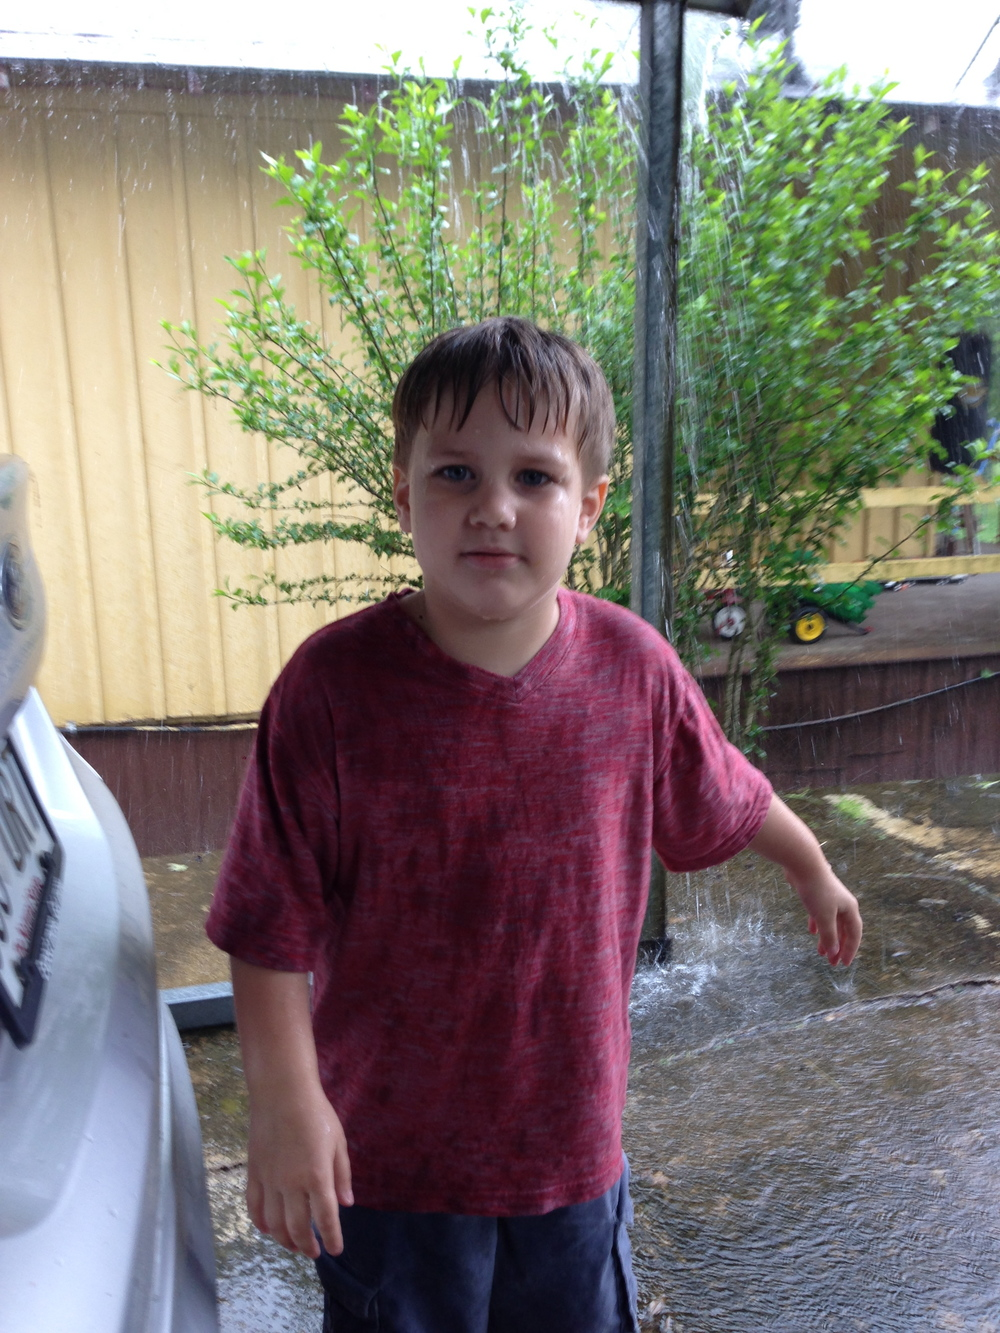 My cousin Michael's grandson, Bentley got a little wet in the downpour!